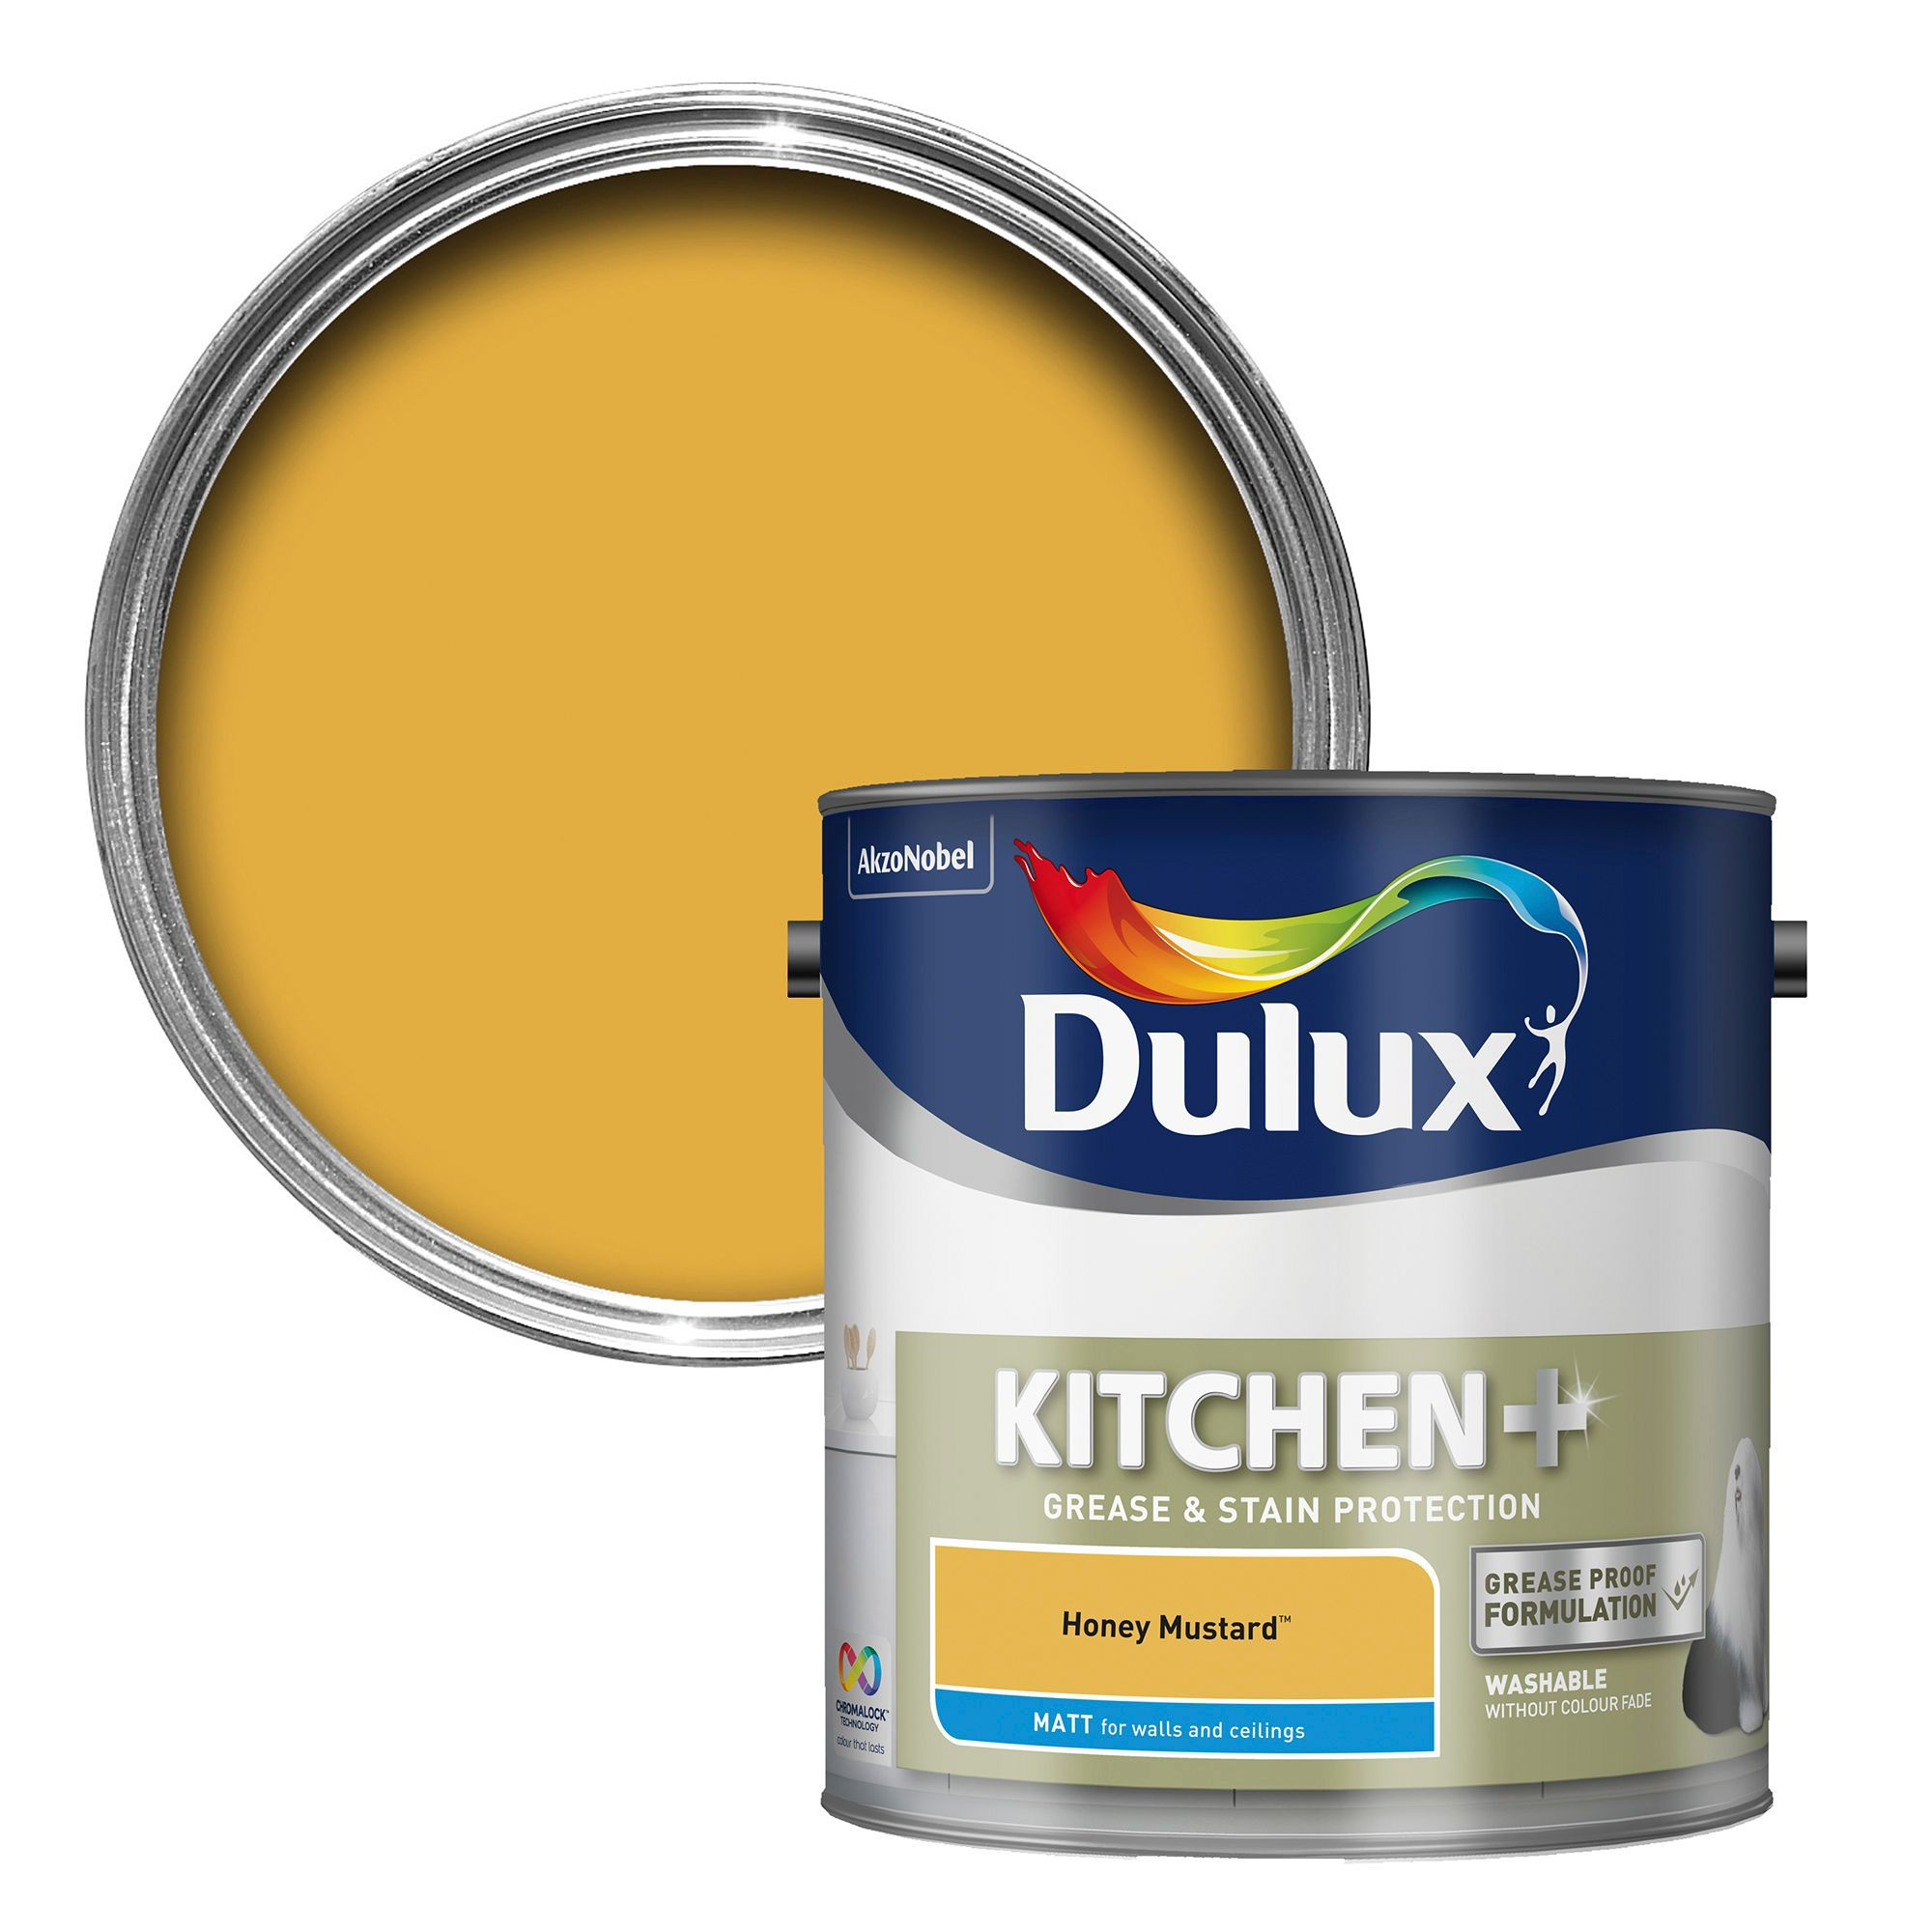 Dulux Kitchen Honey Mustard Matt Emulsion Paint 2.5L | Departments ...